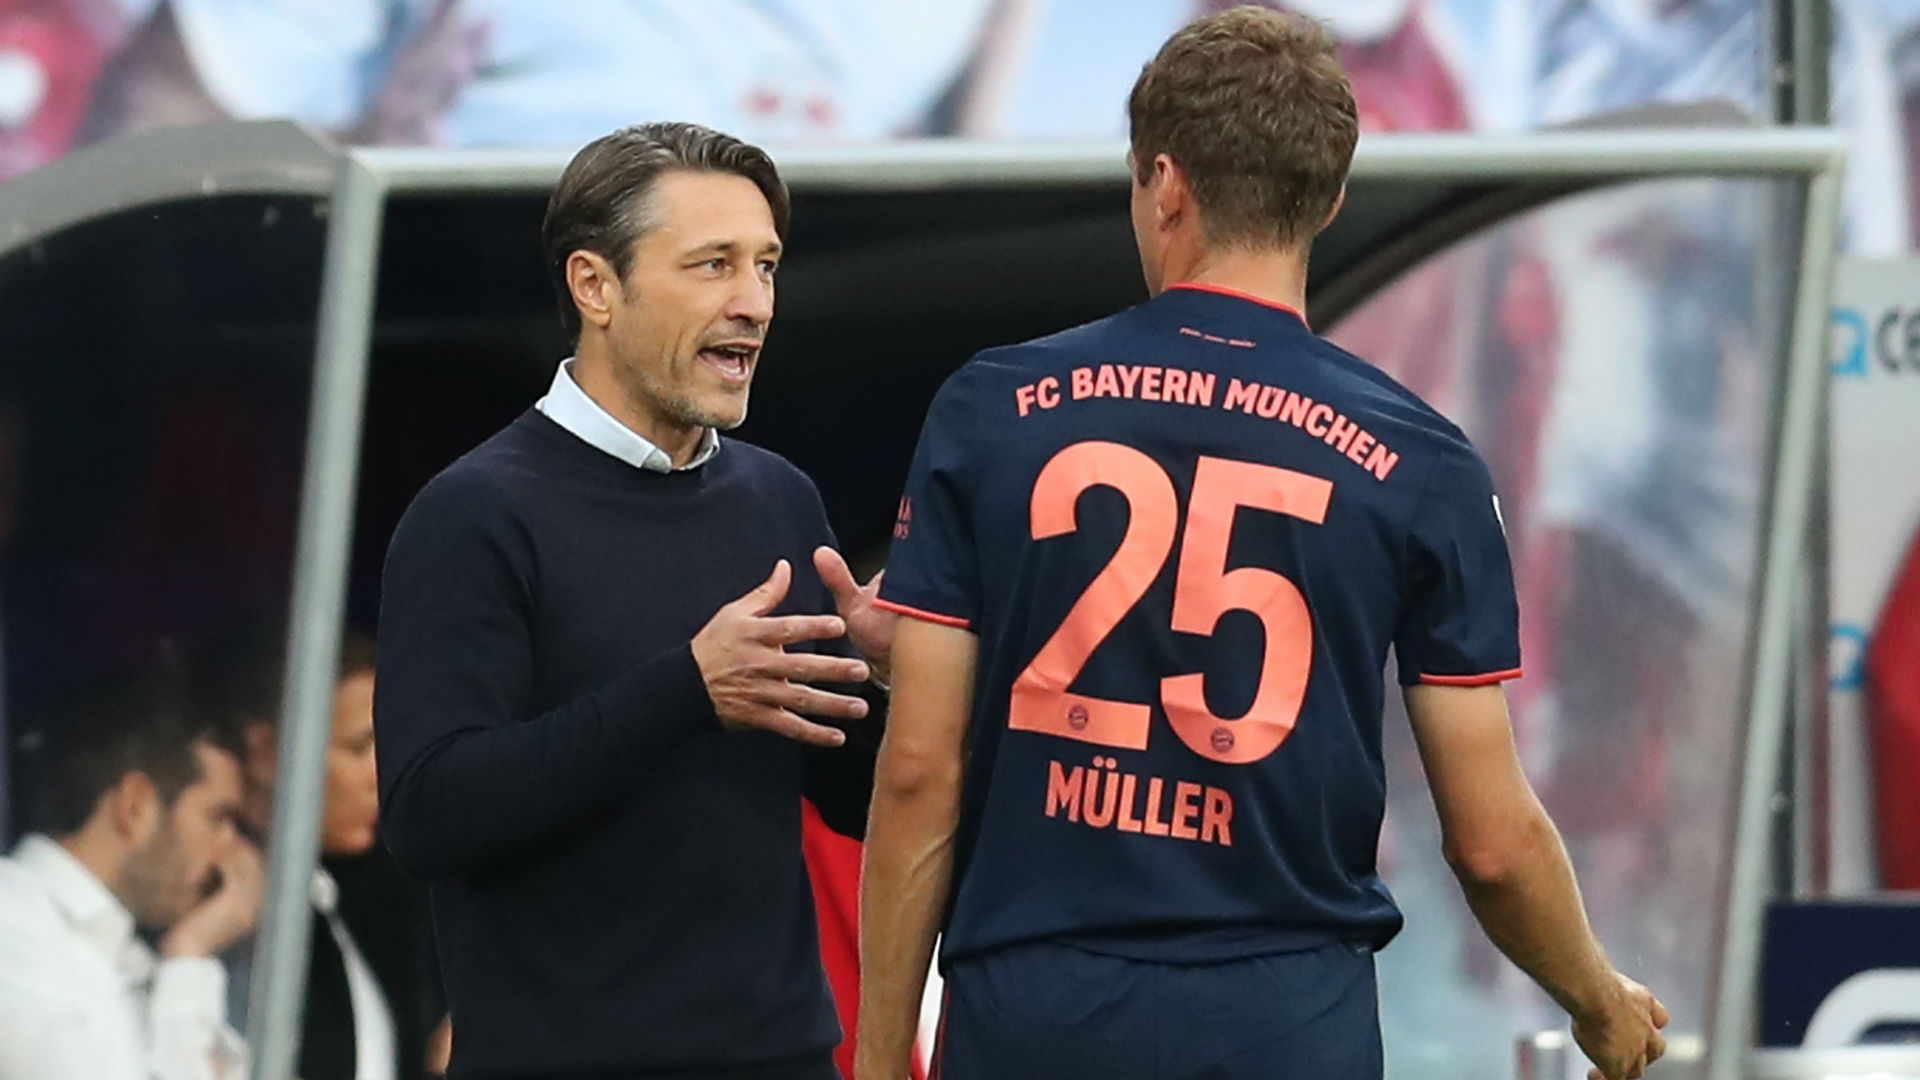 Kovac accepts he made a mistake with Muller comments